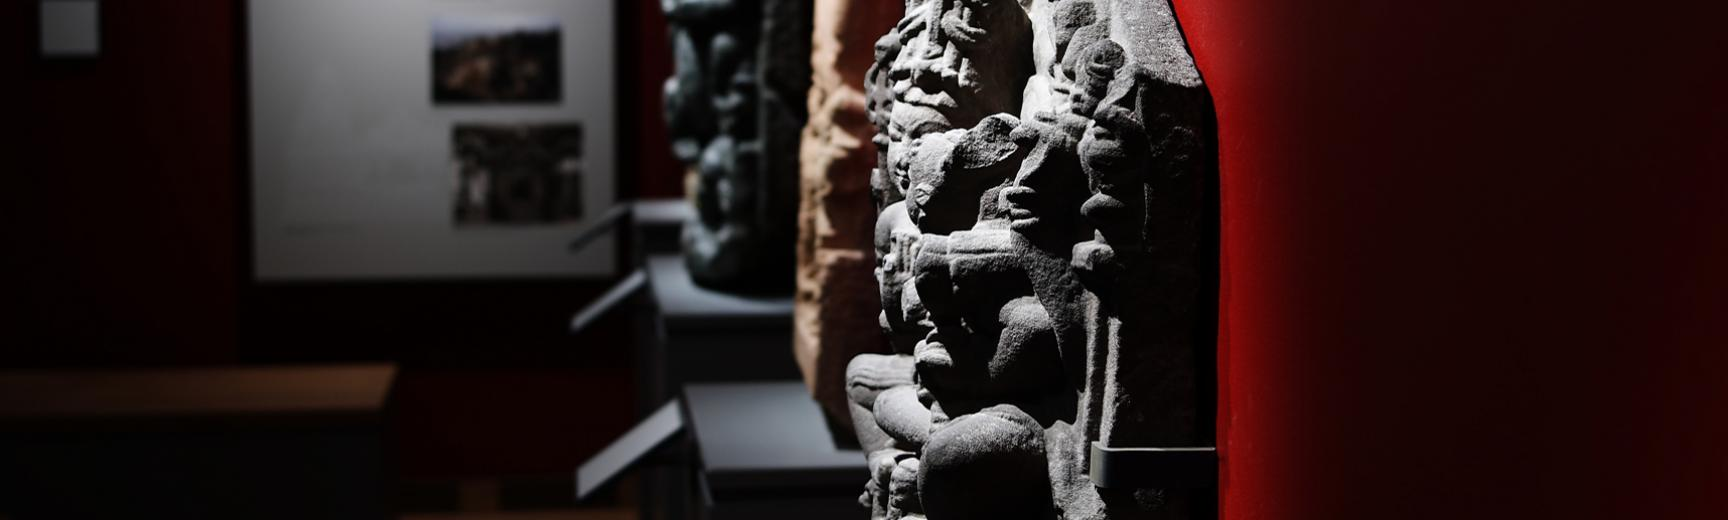 The India from AD 600 Gallery at the Ashmolean Museum